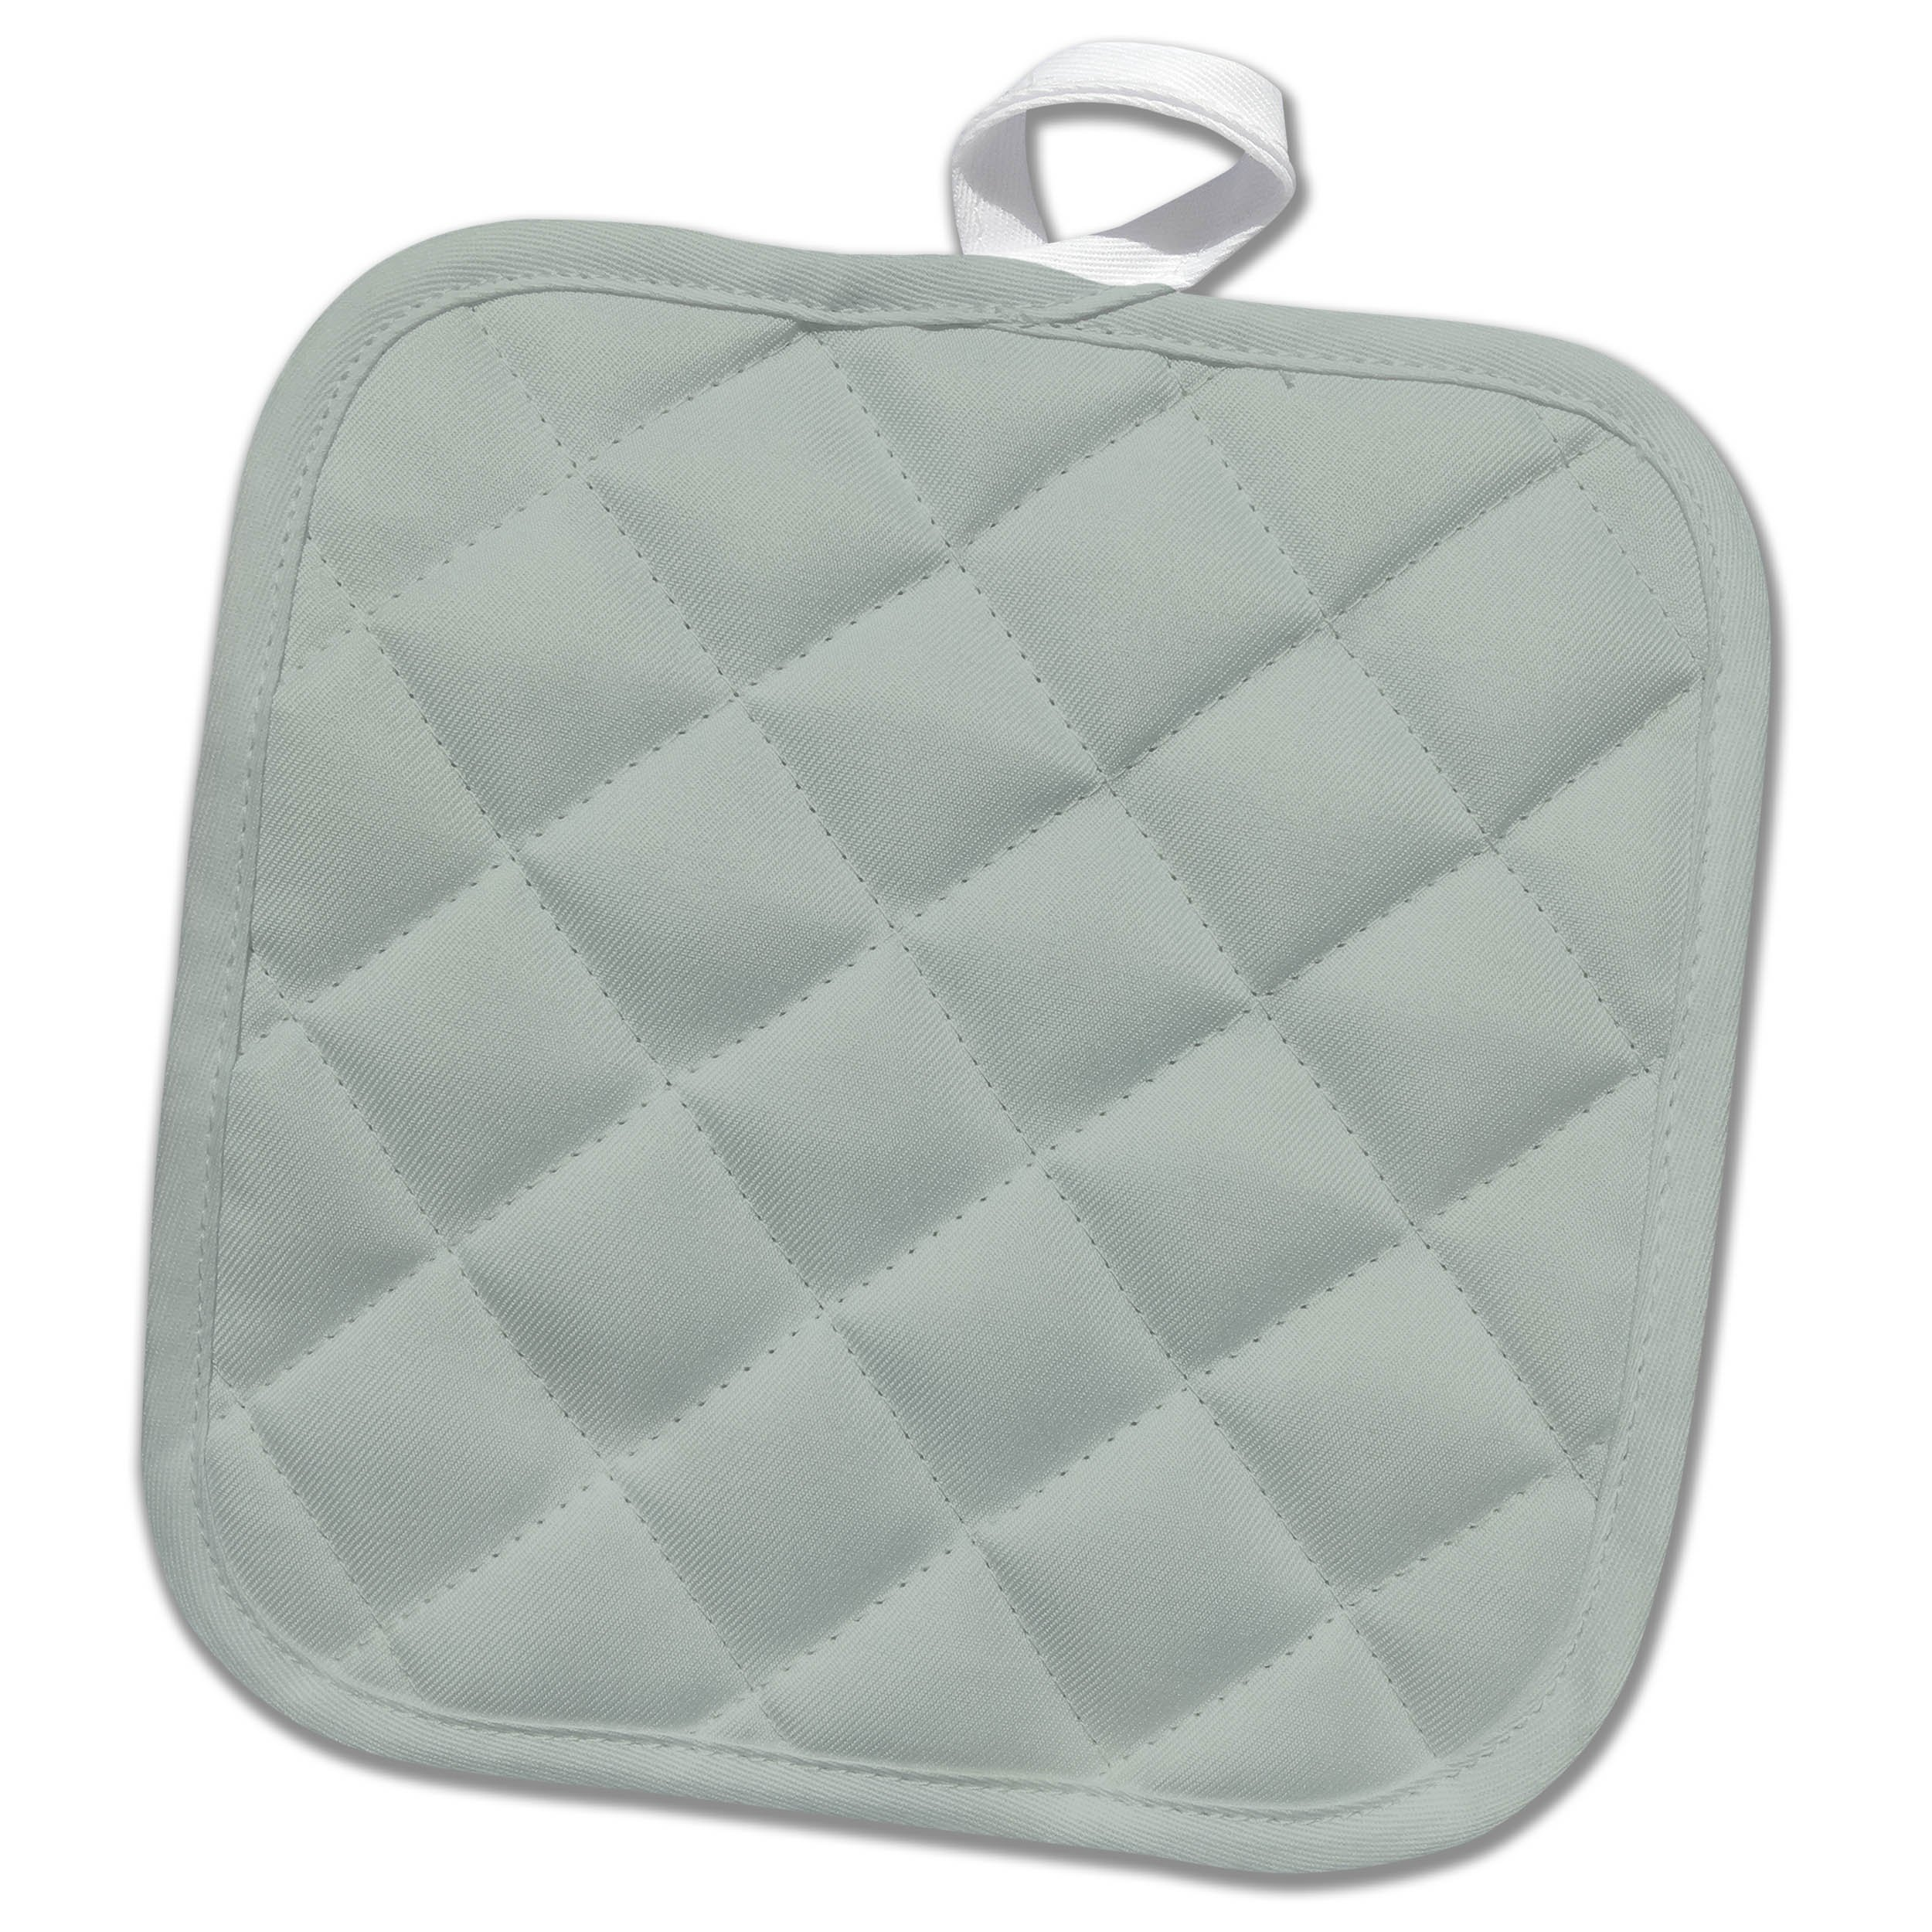 3dRose Spring and Summer 2018 Colors - Image of Cool Tone of Grayish Green - 8x8 Potholder (phl_280019_1)